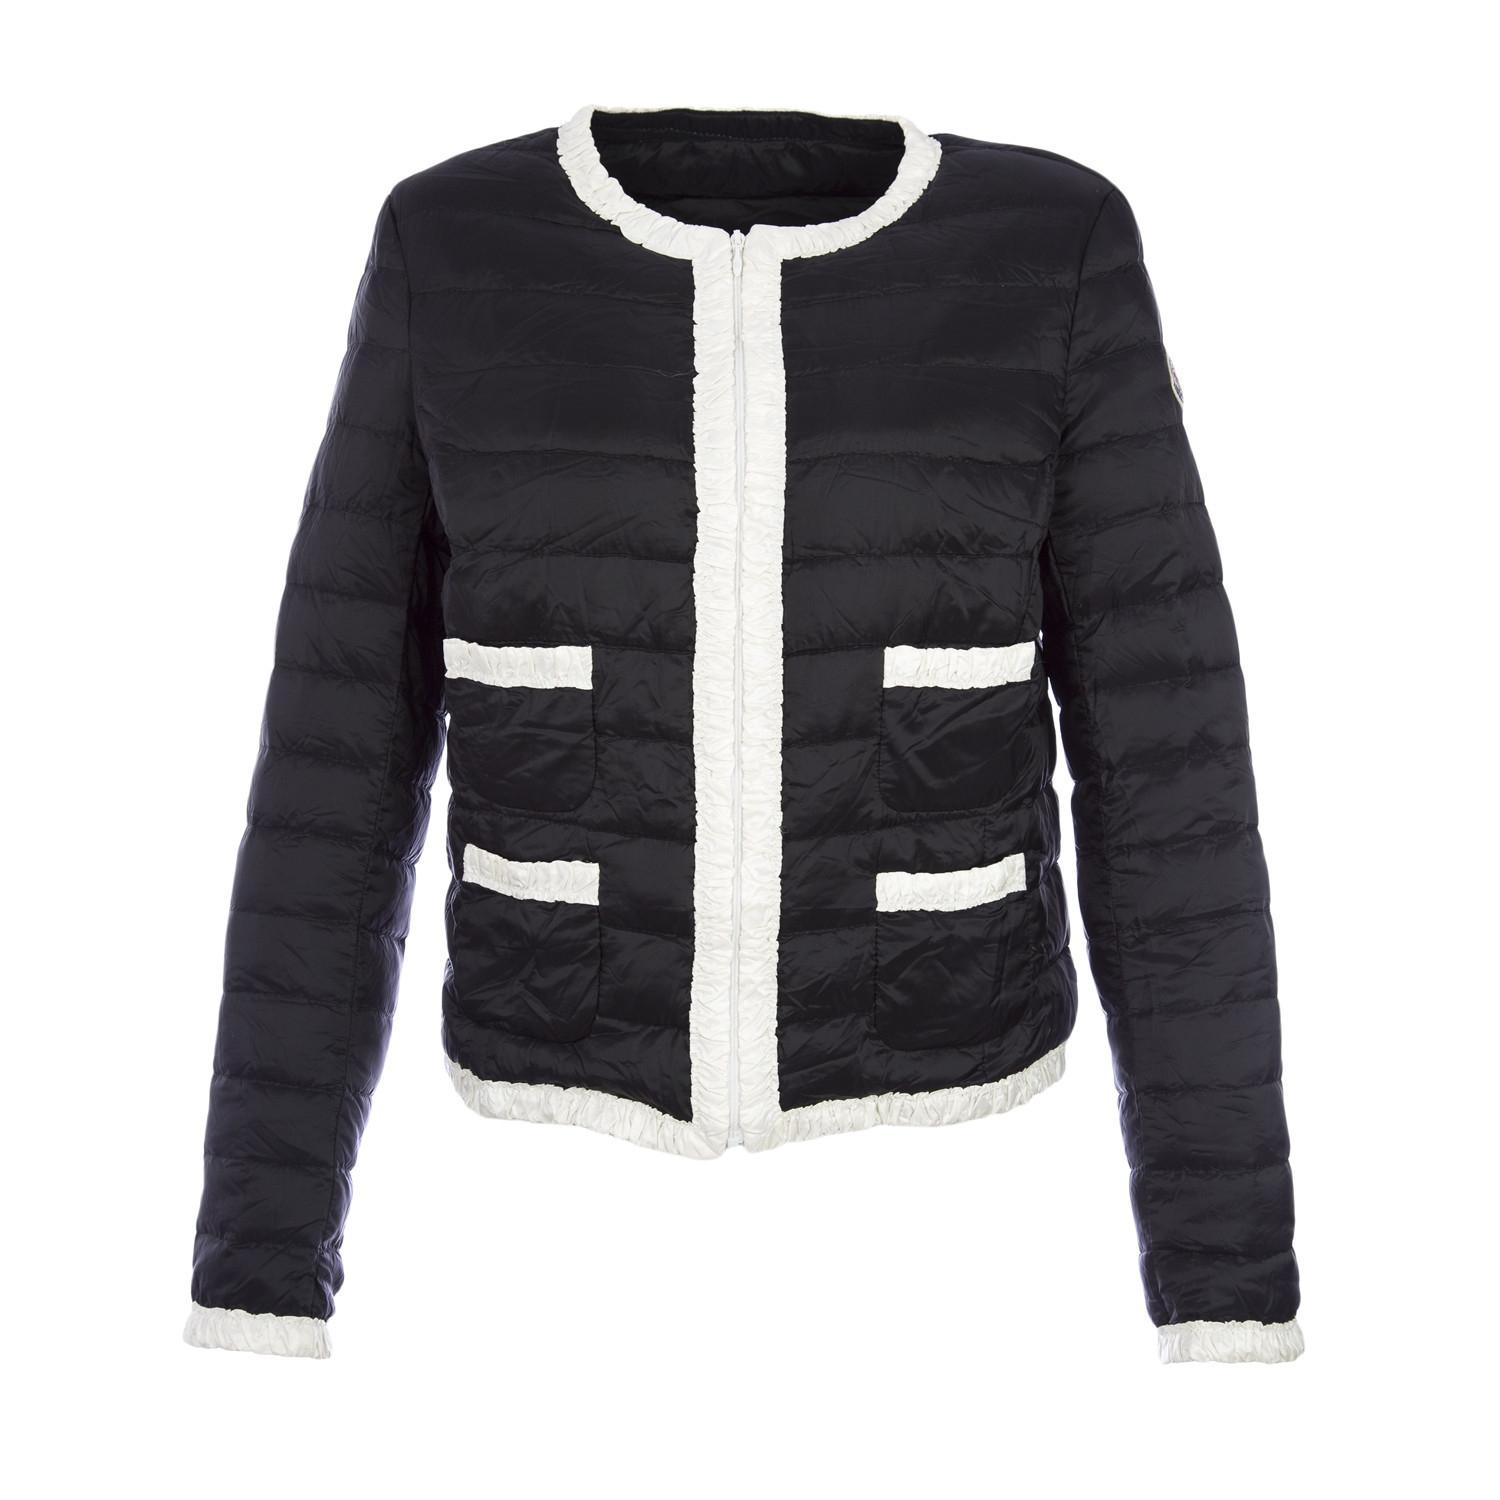 moncler alpin women black jacket